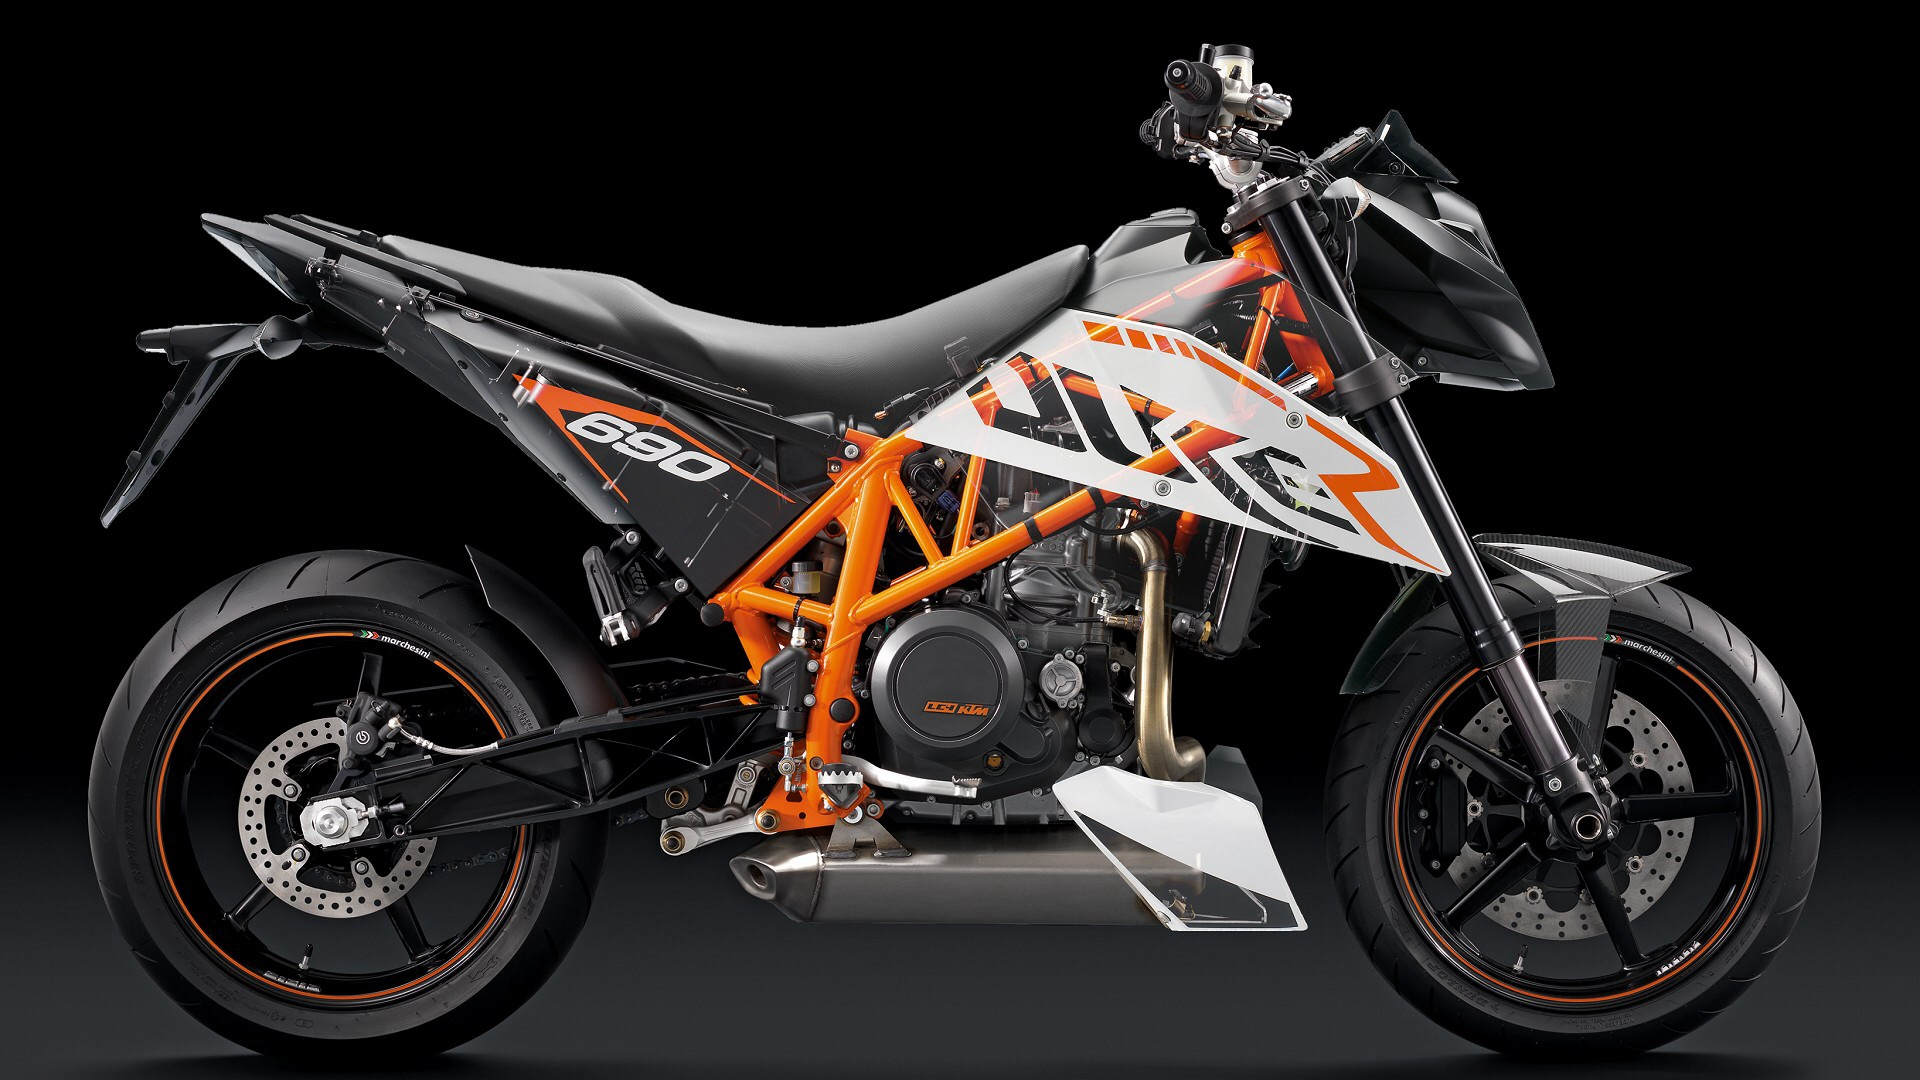 ktm duke 690 r ghostview by duke690r com on deviantart. Black Bedroom Furniture Sets. Home Design Ideas